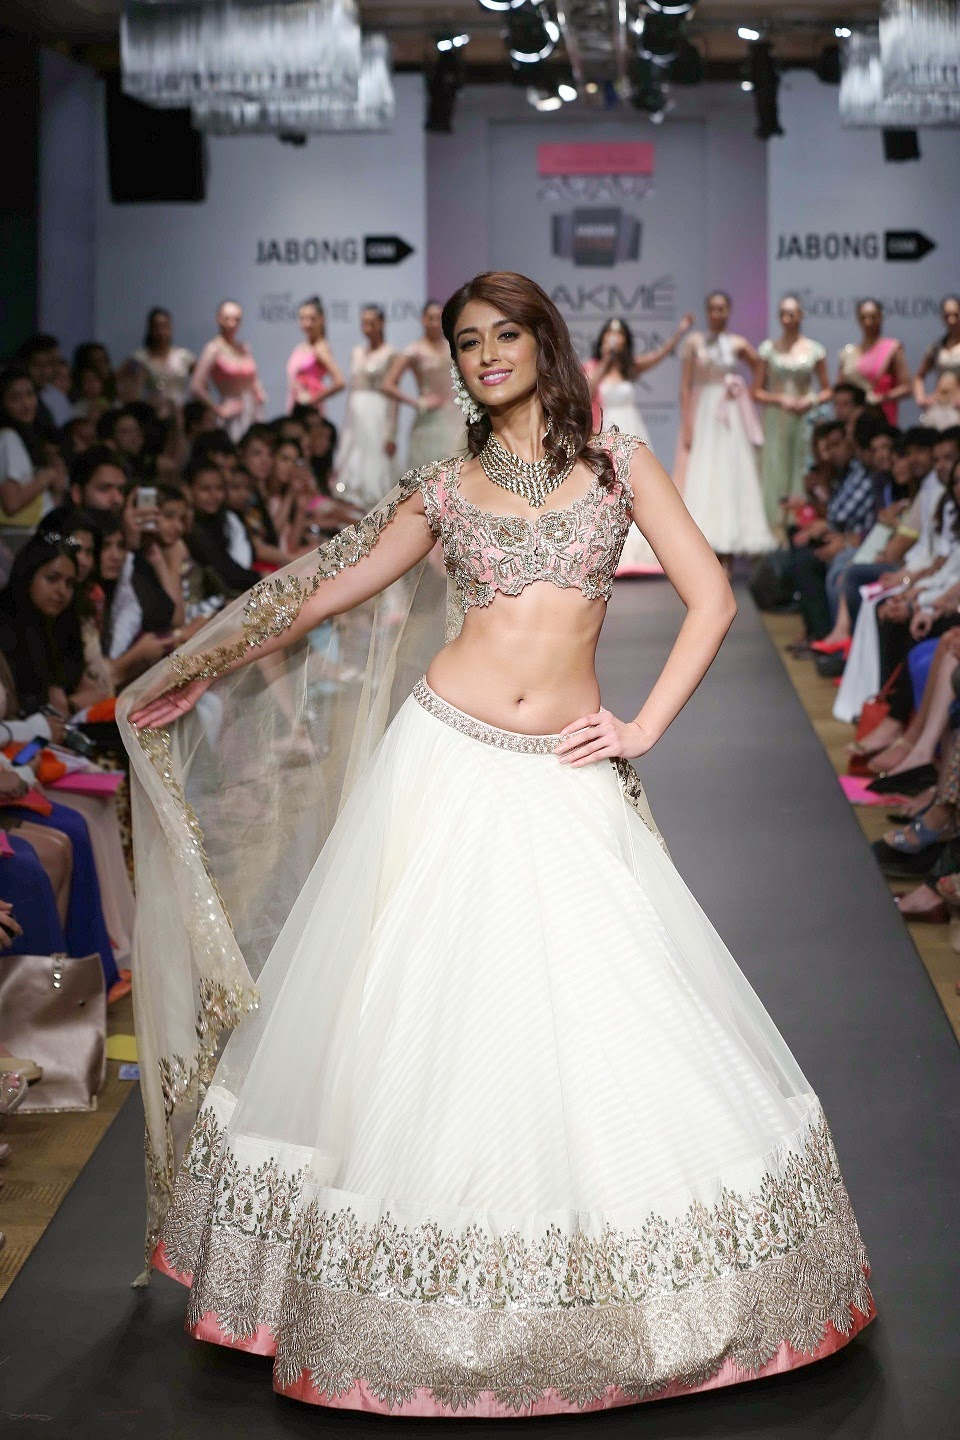 Ending the show was beautiful Ileana D'Cruz who stunned all in a ravishing cream lehenga and peach toned blouse with sequins and embroidery.